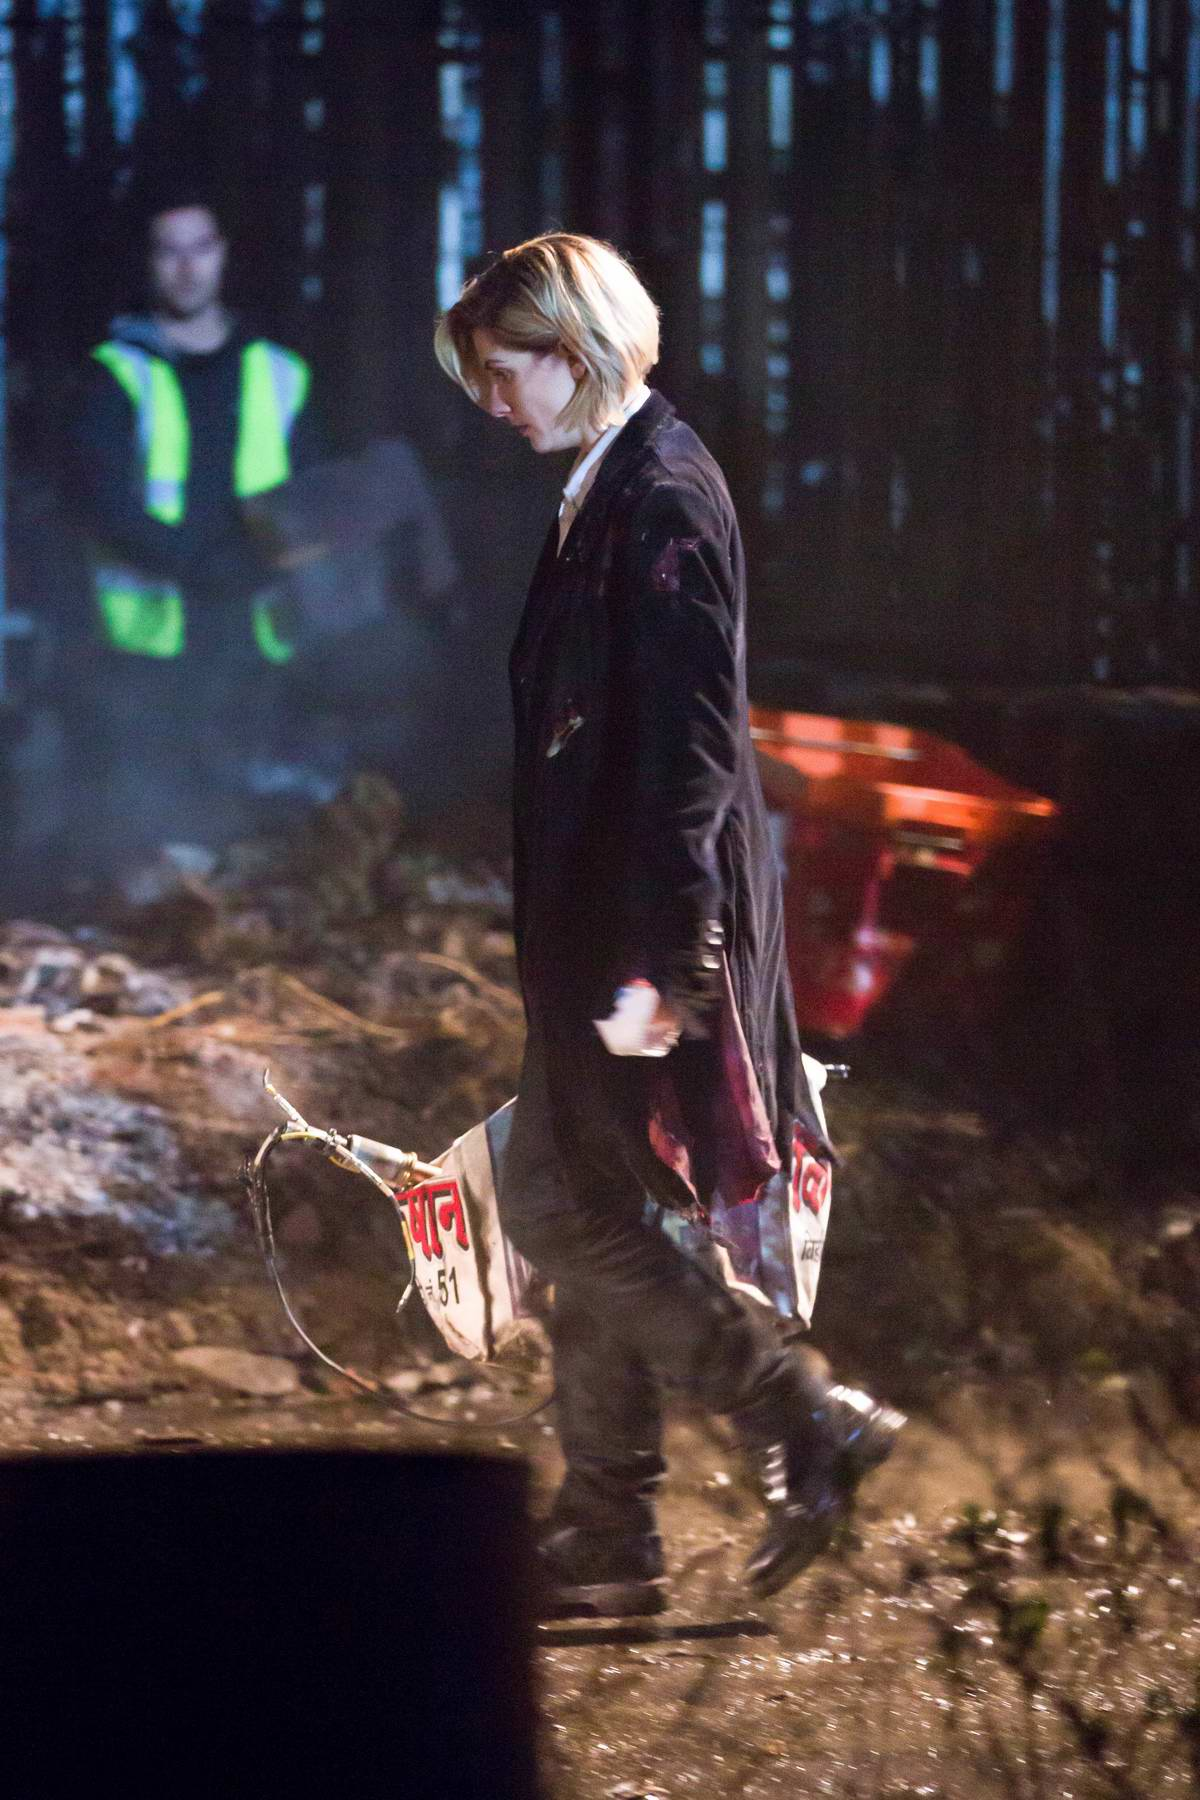 Jodie Whittaker filming for the first time for 'Doctor Who' in Sheffield, UK